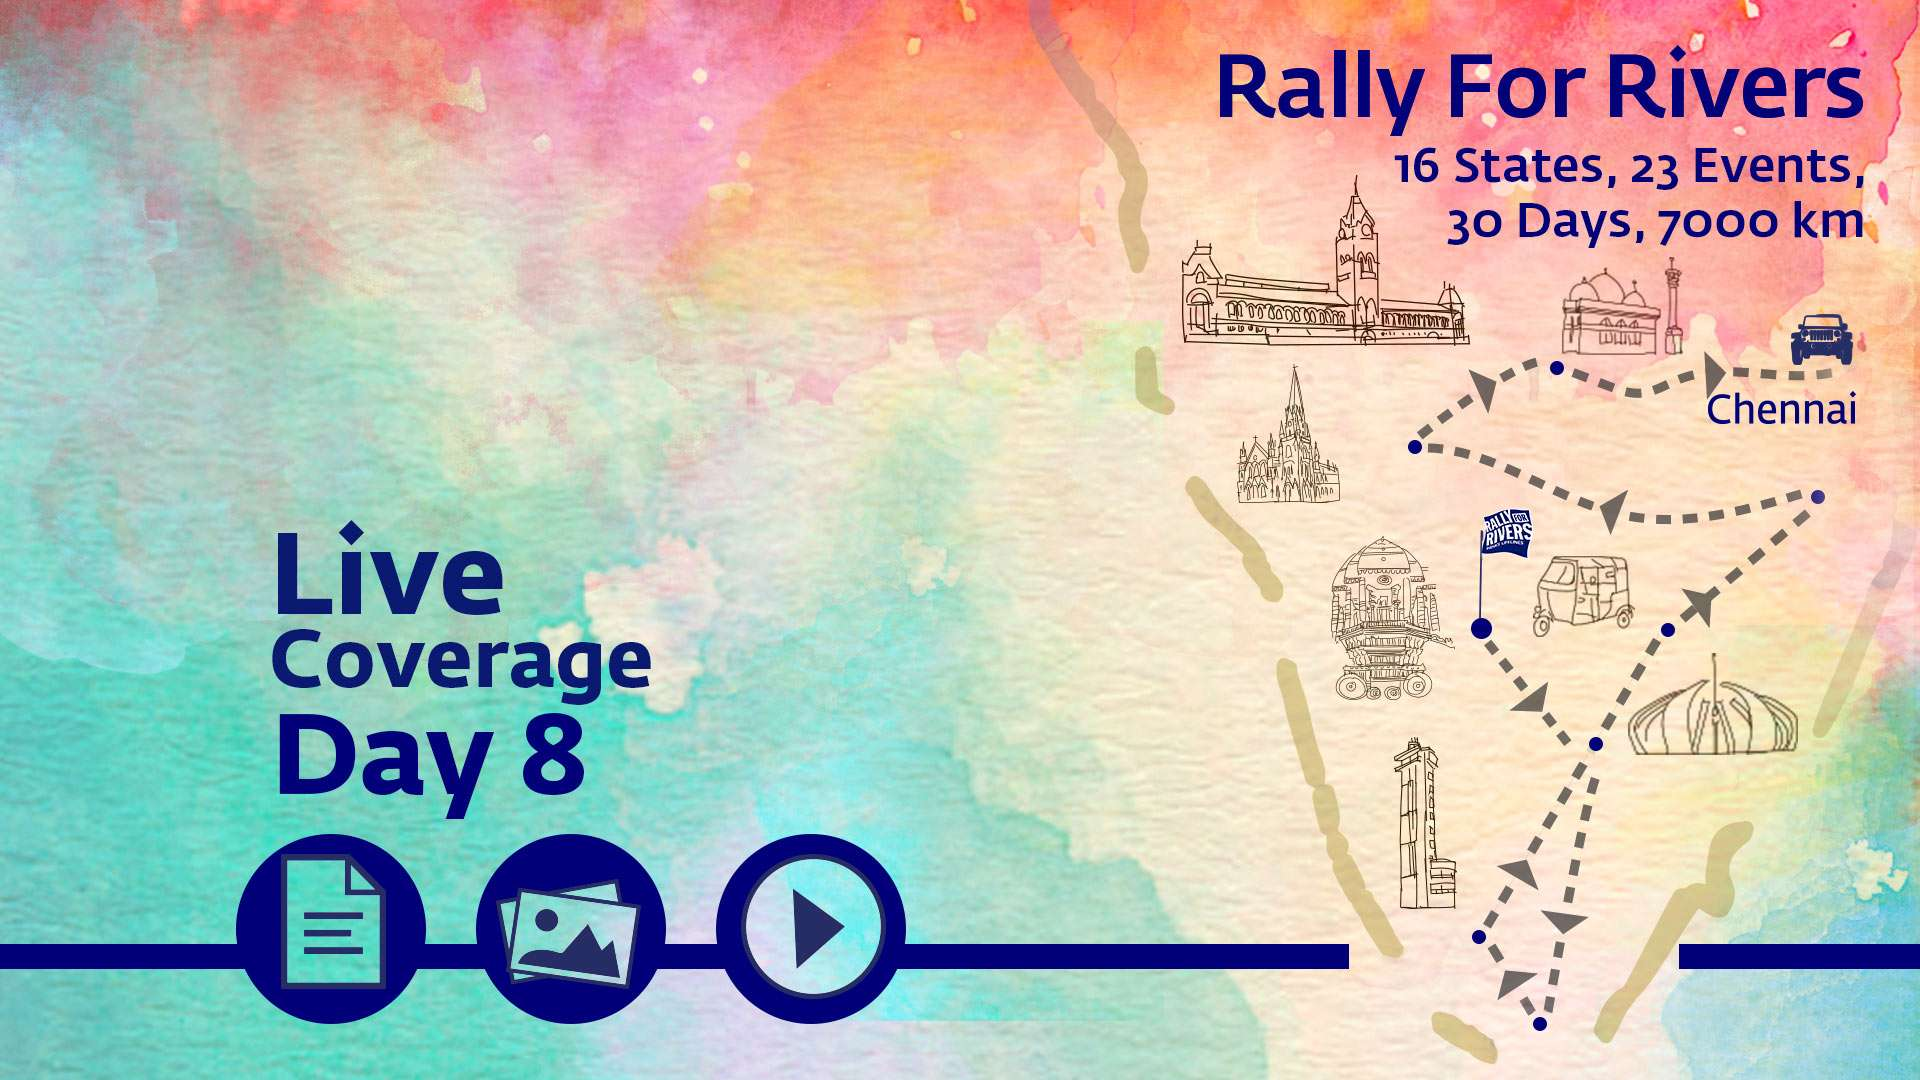 Rally For Rivers in Chennai